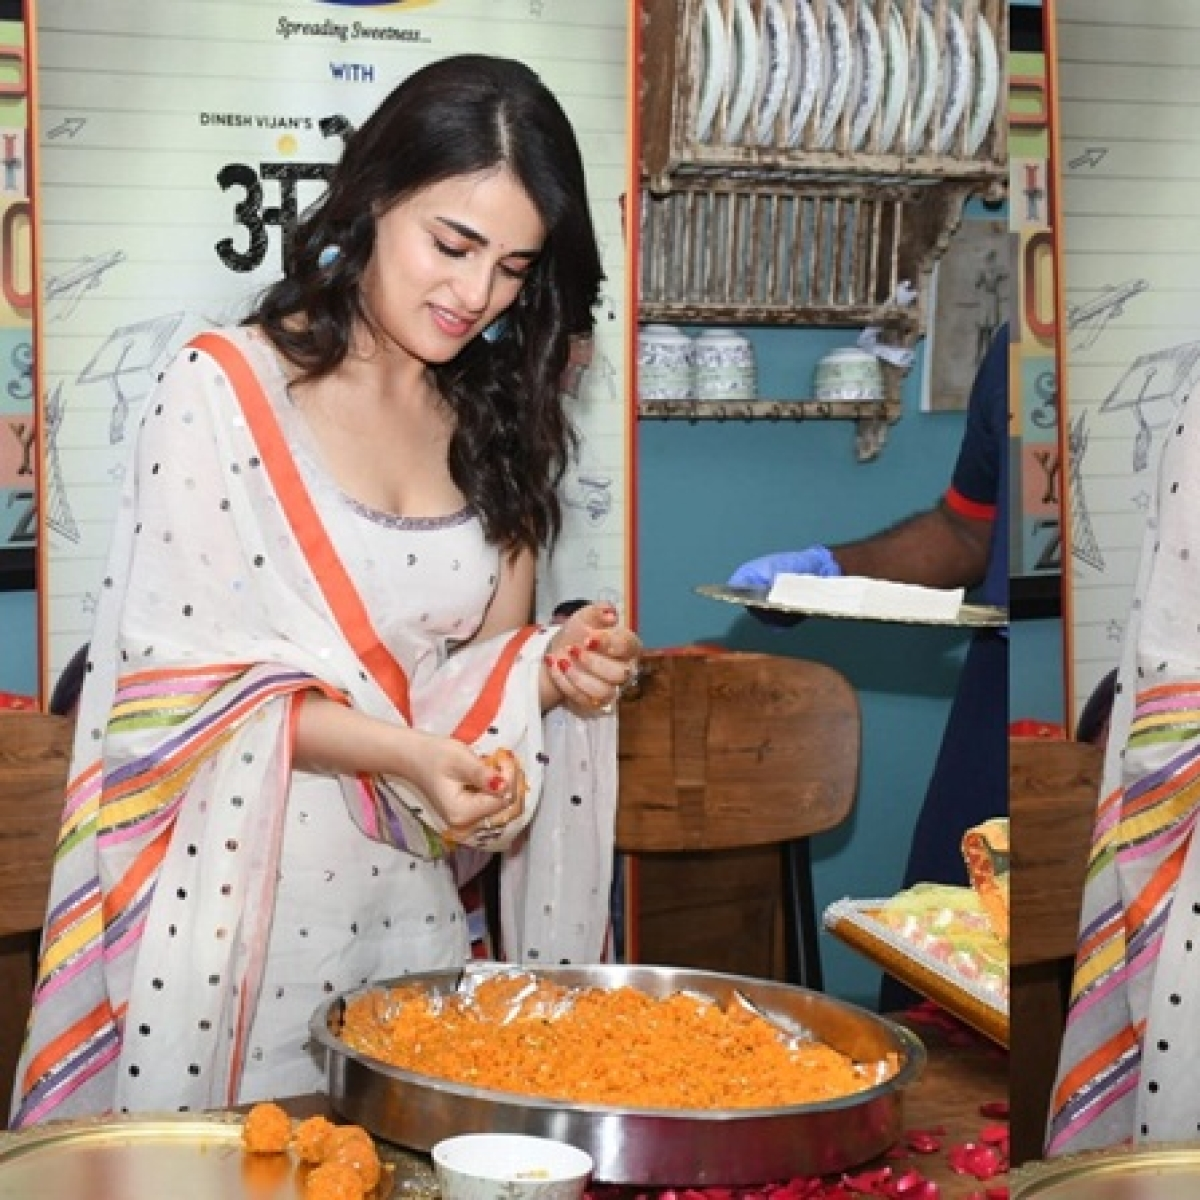 Is it okay for Radhika Madan to promote 'Angrezi Medium' like this amid coronavirus outbreak?